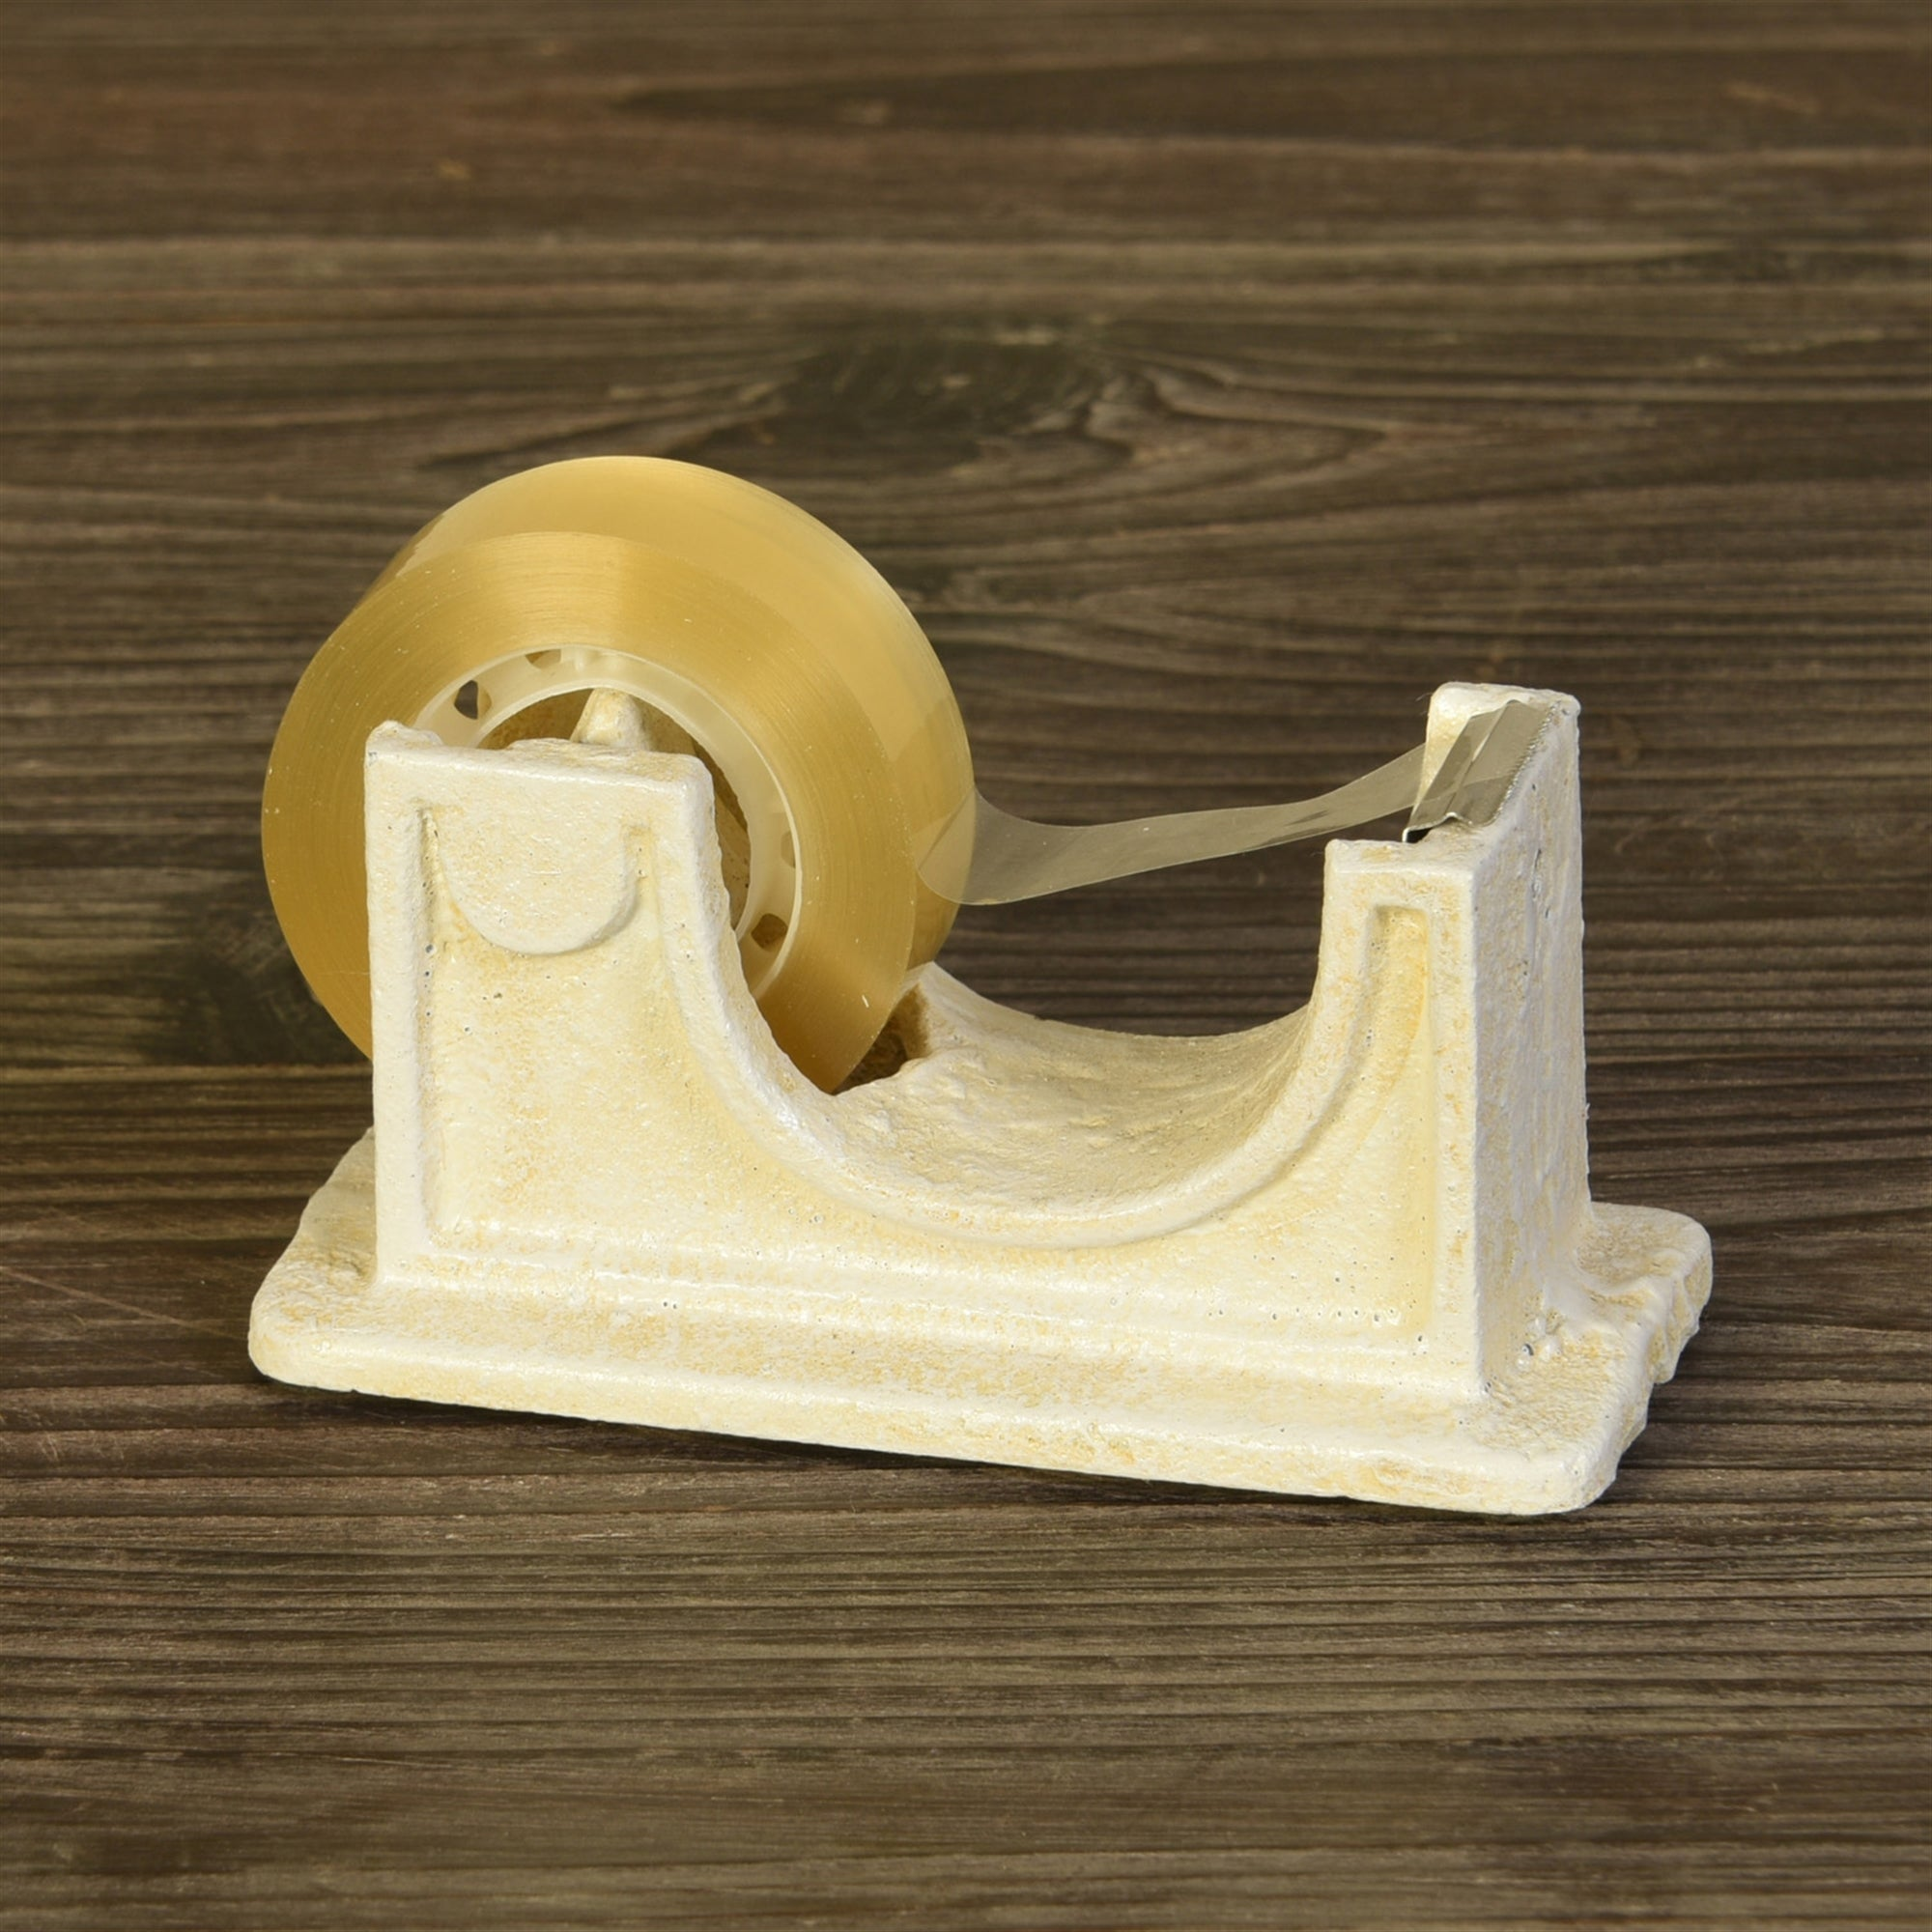 Cast iron tape dispenser